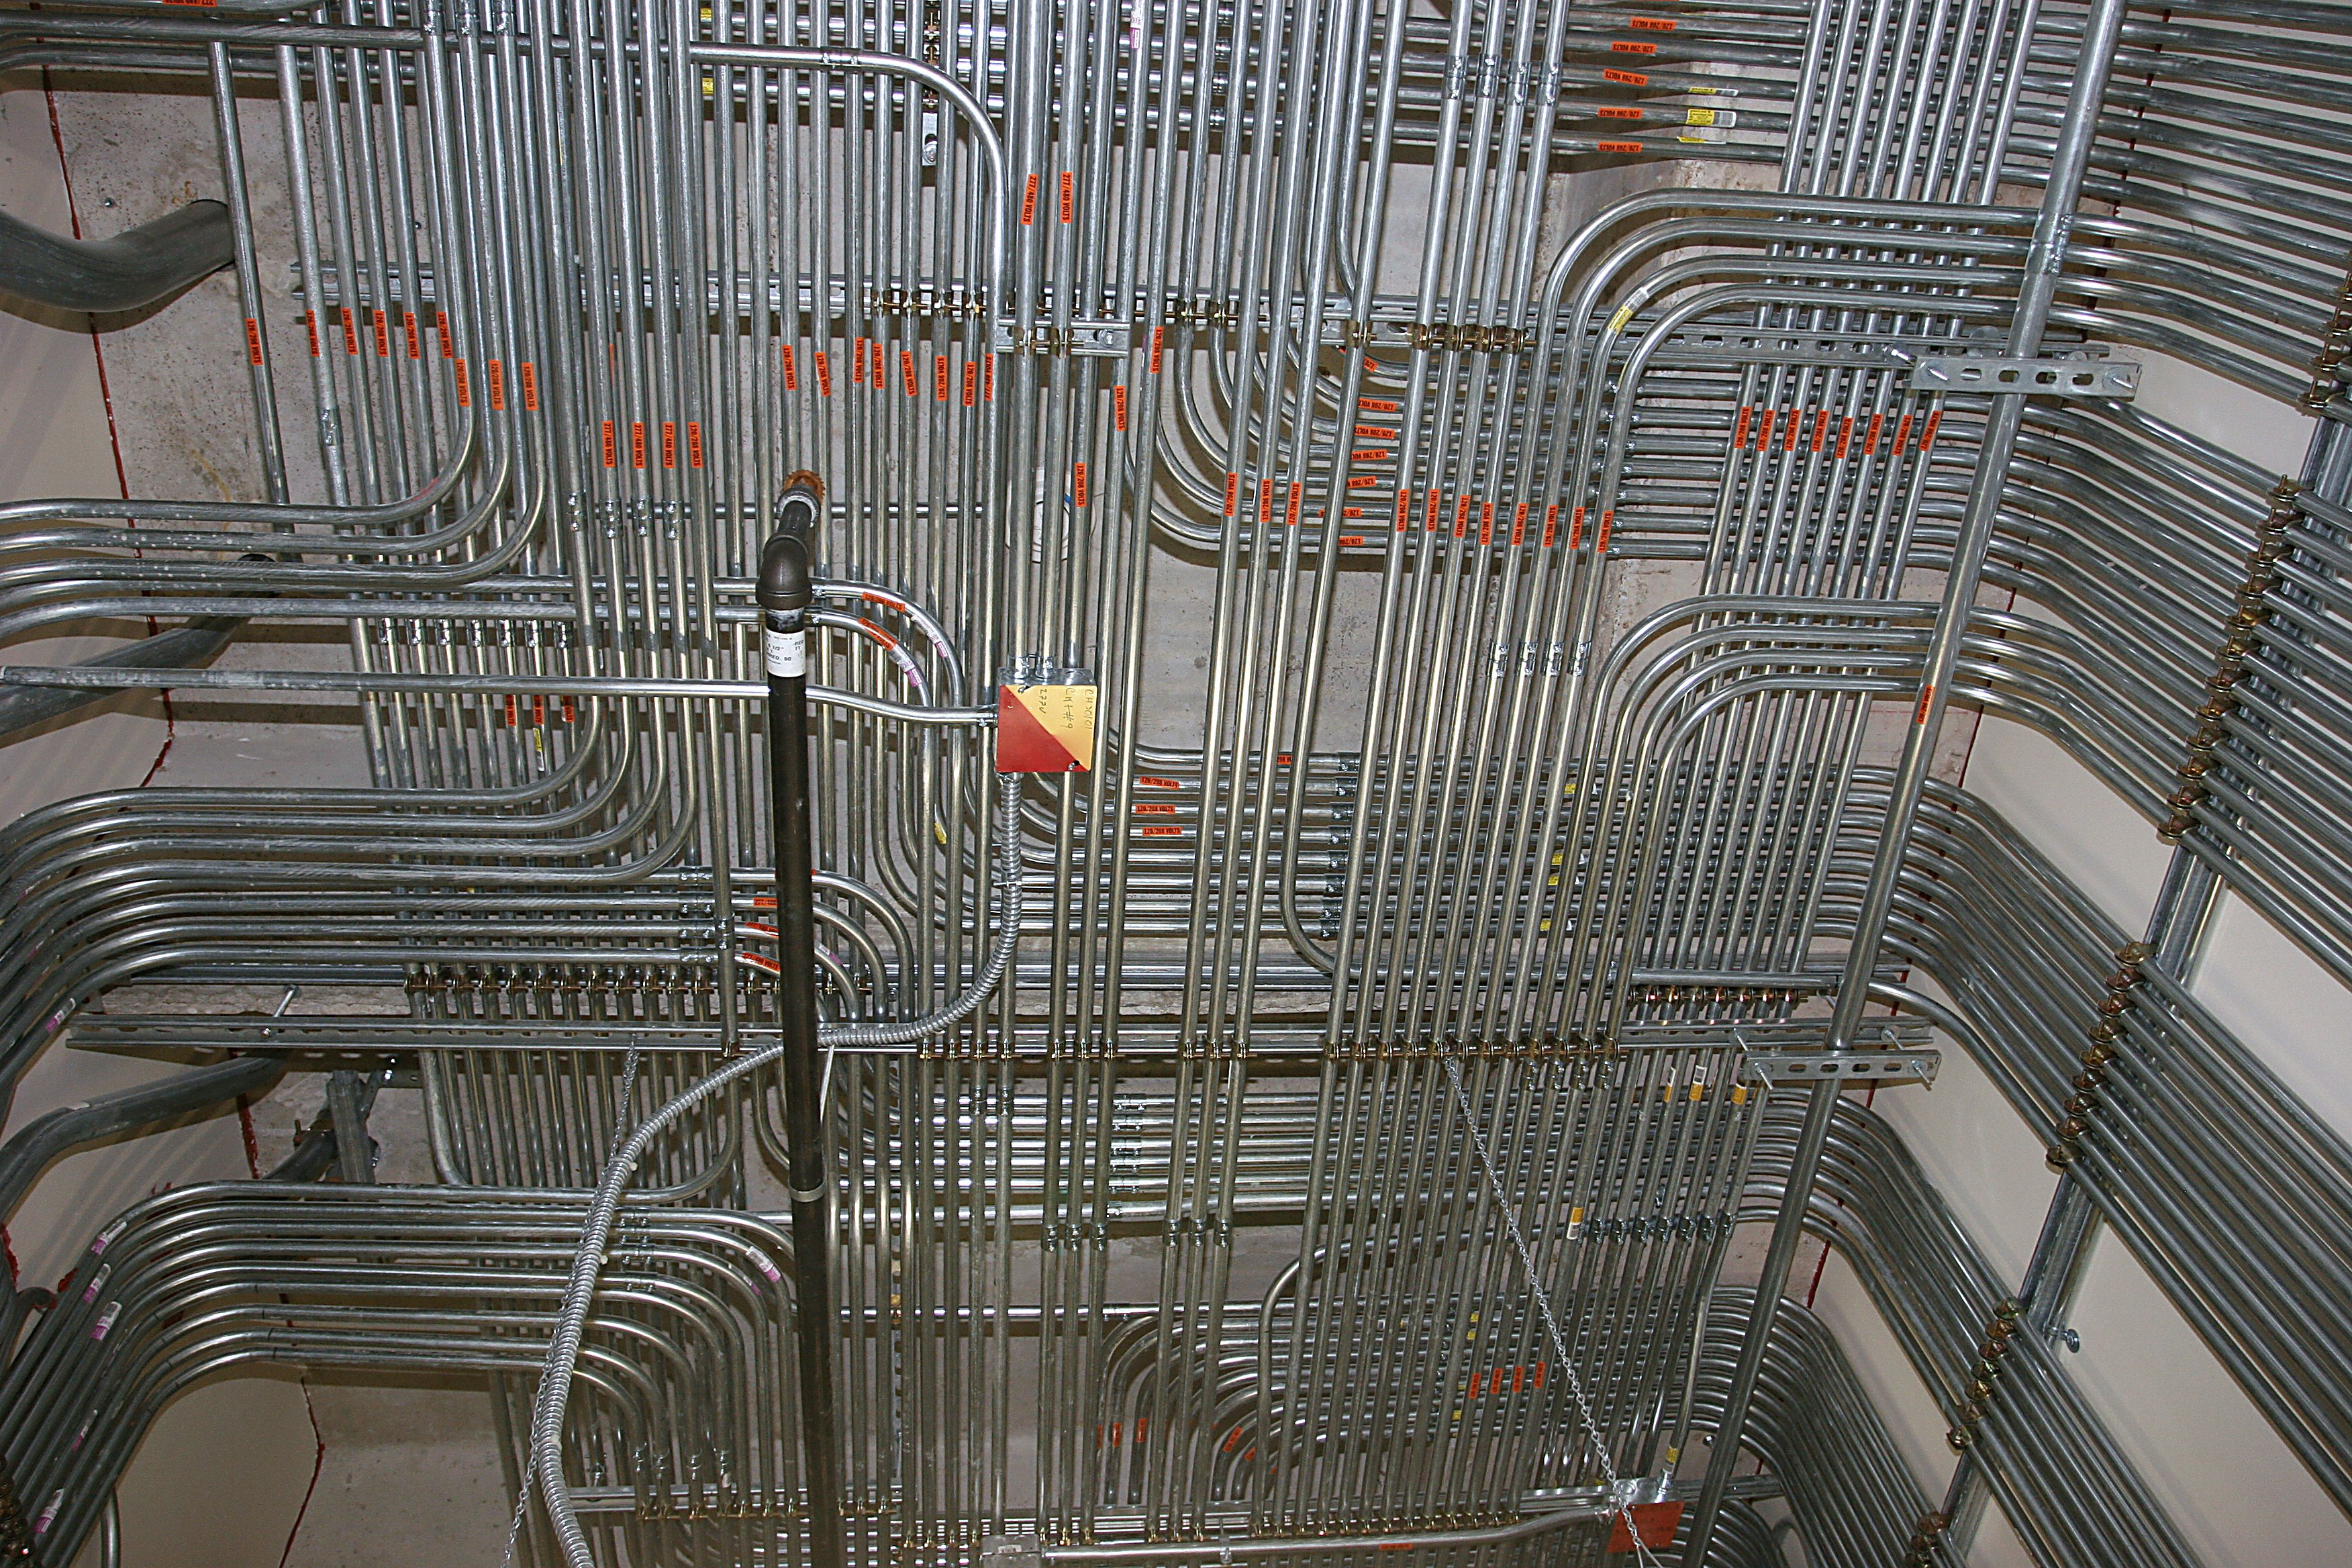 Pipes, wiring and electrical tubing in the Dell Childrens Medical Center in Austin, TX.